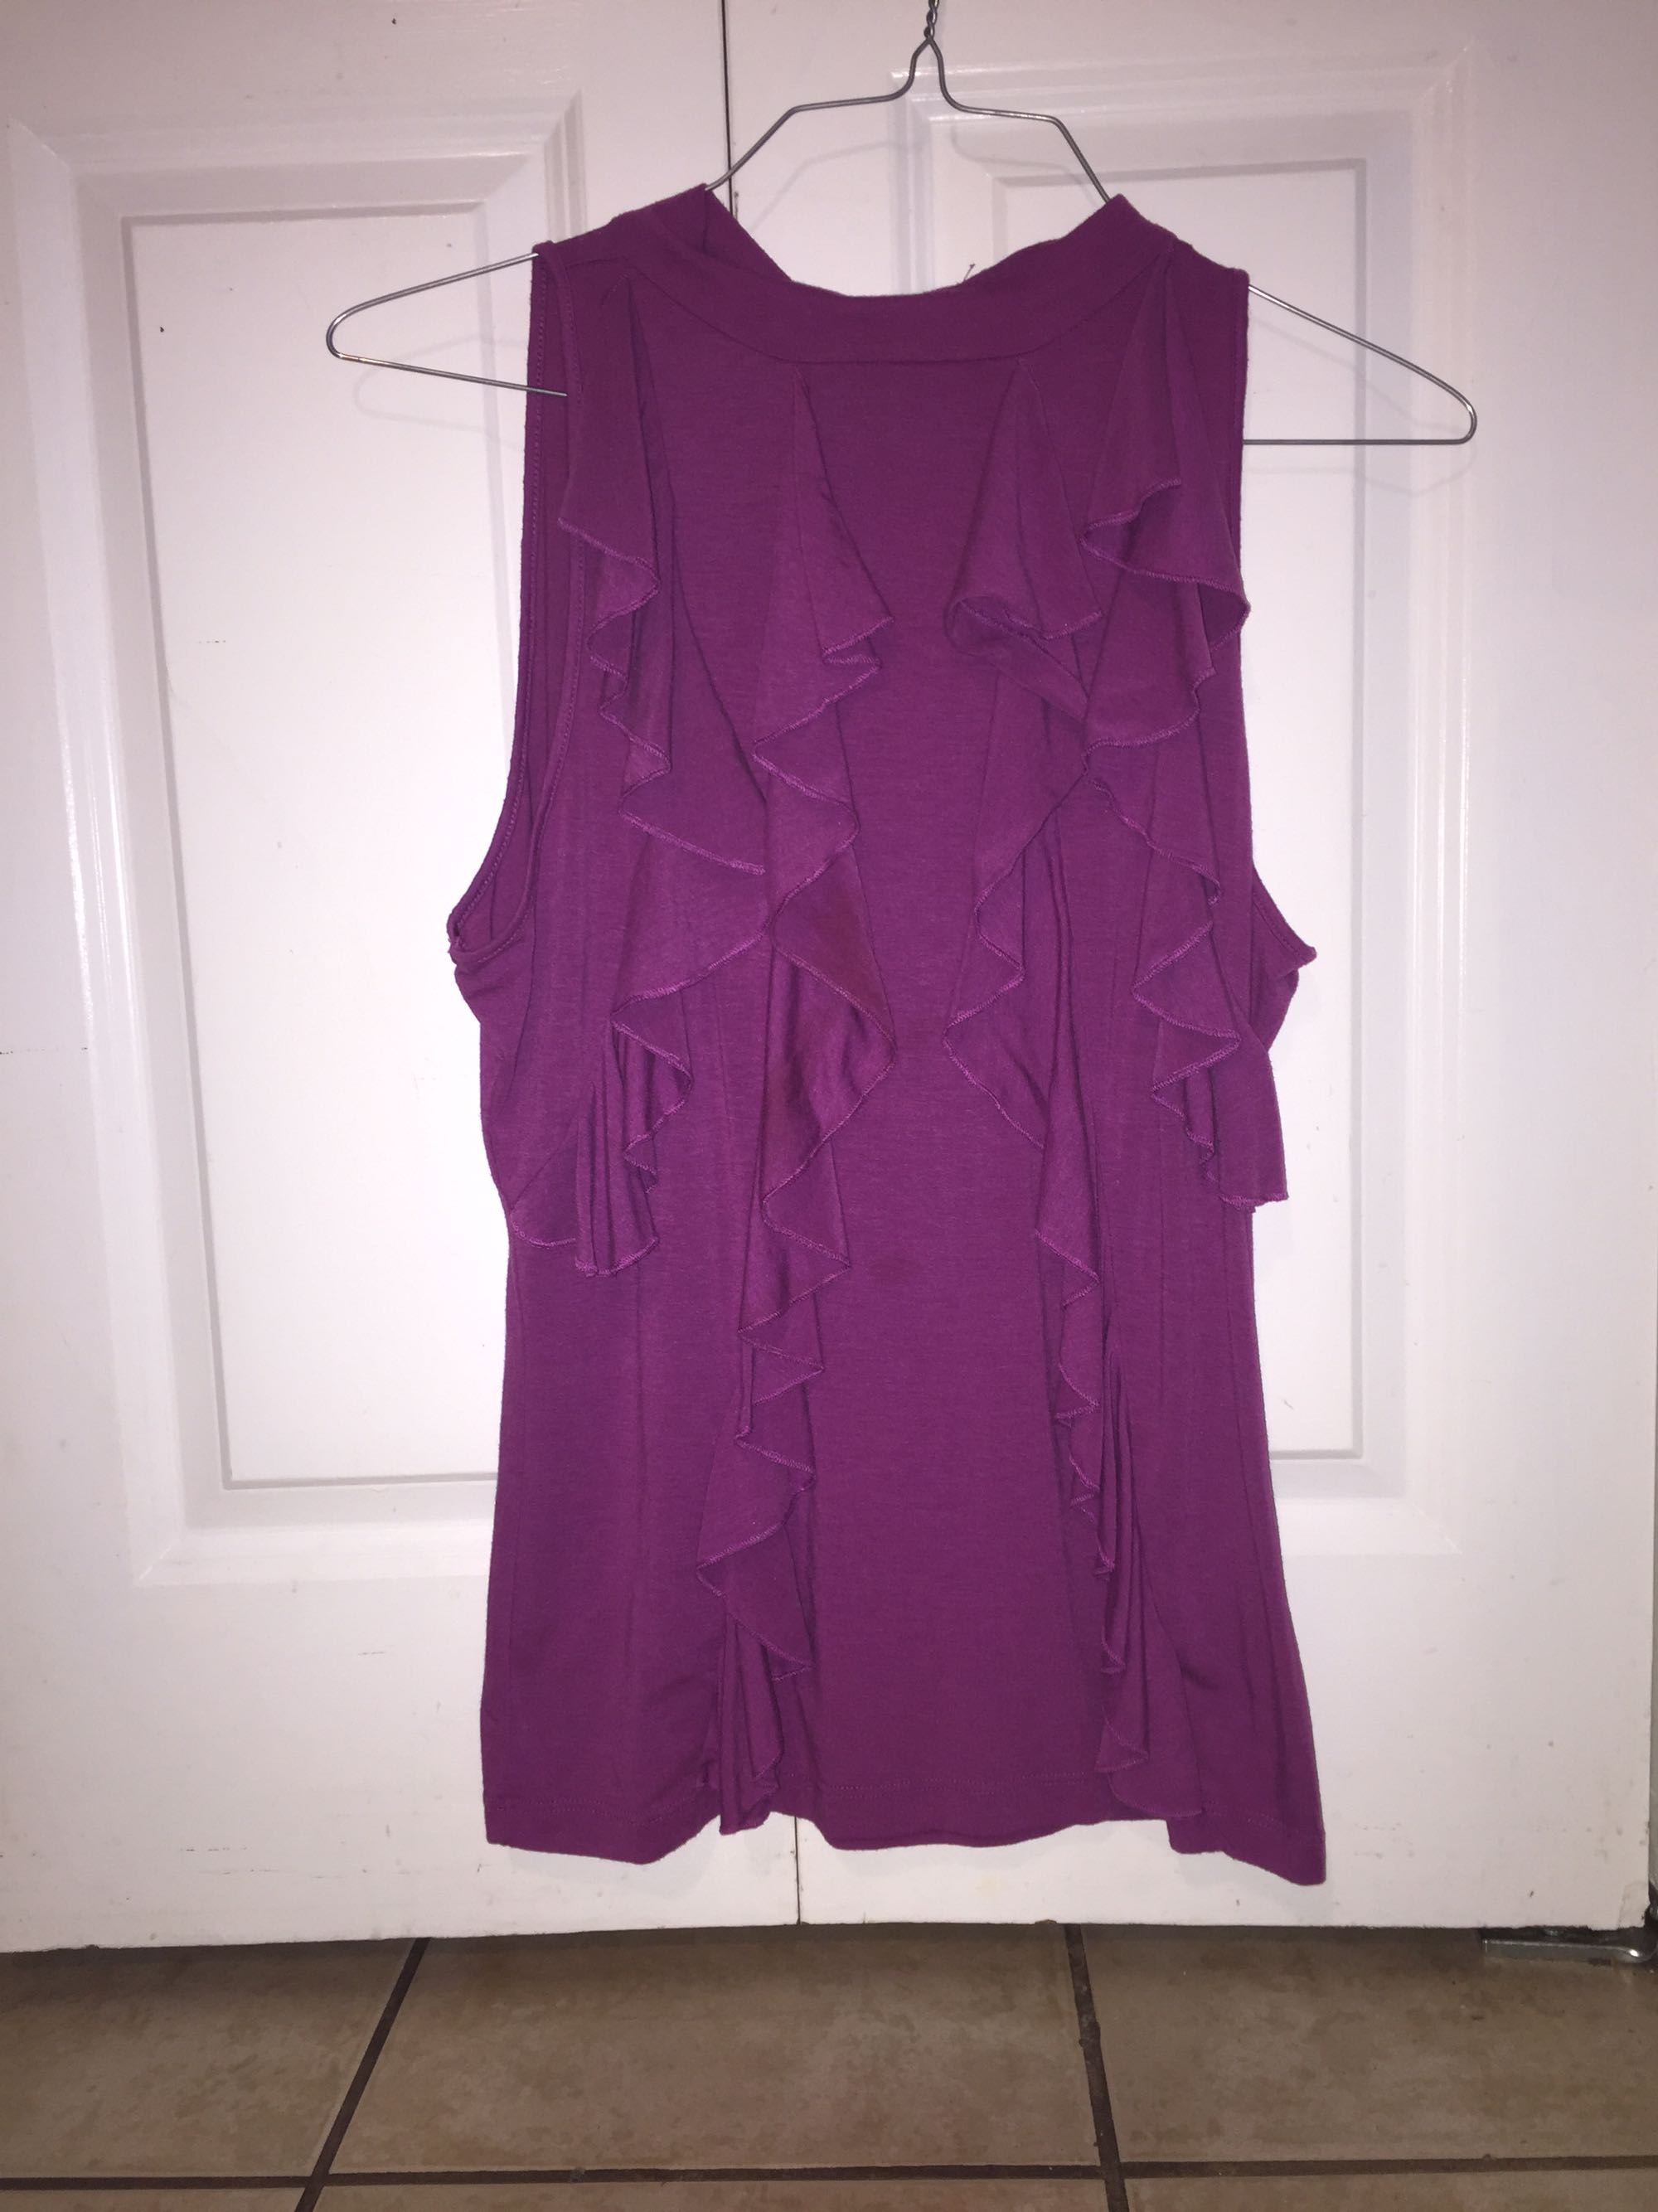 Susie rose cute blouse size xl